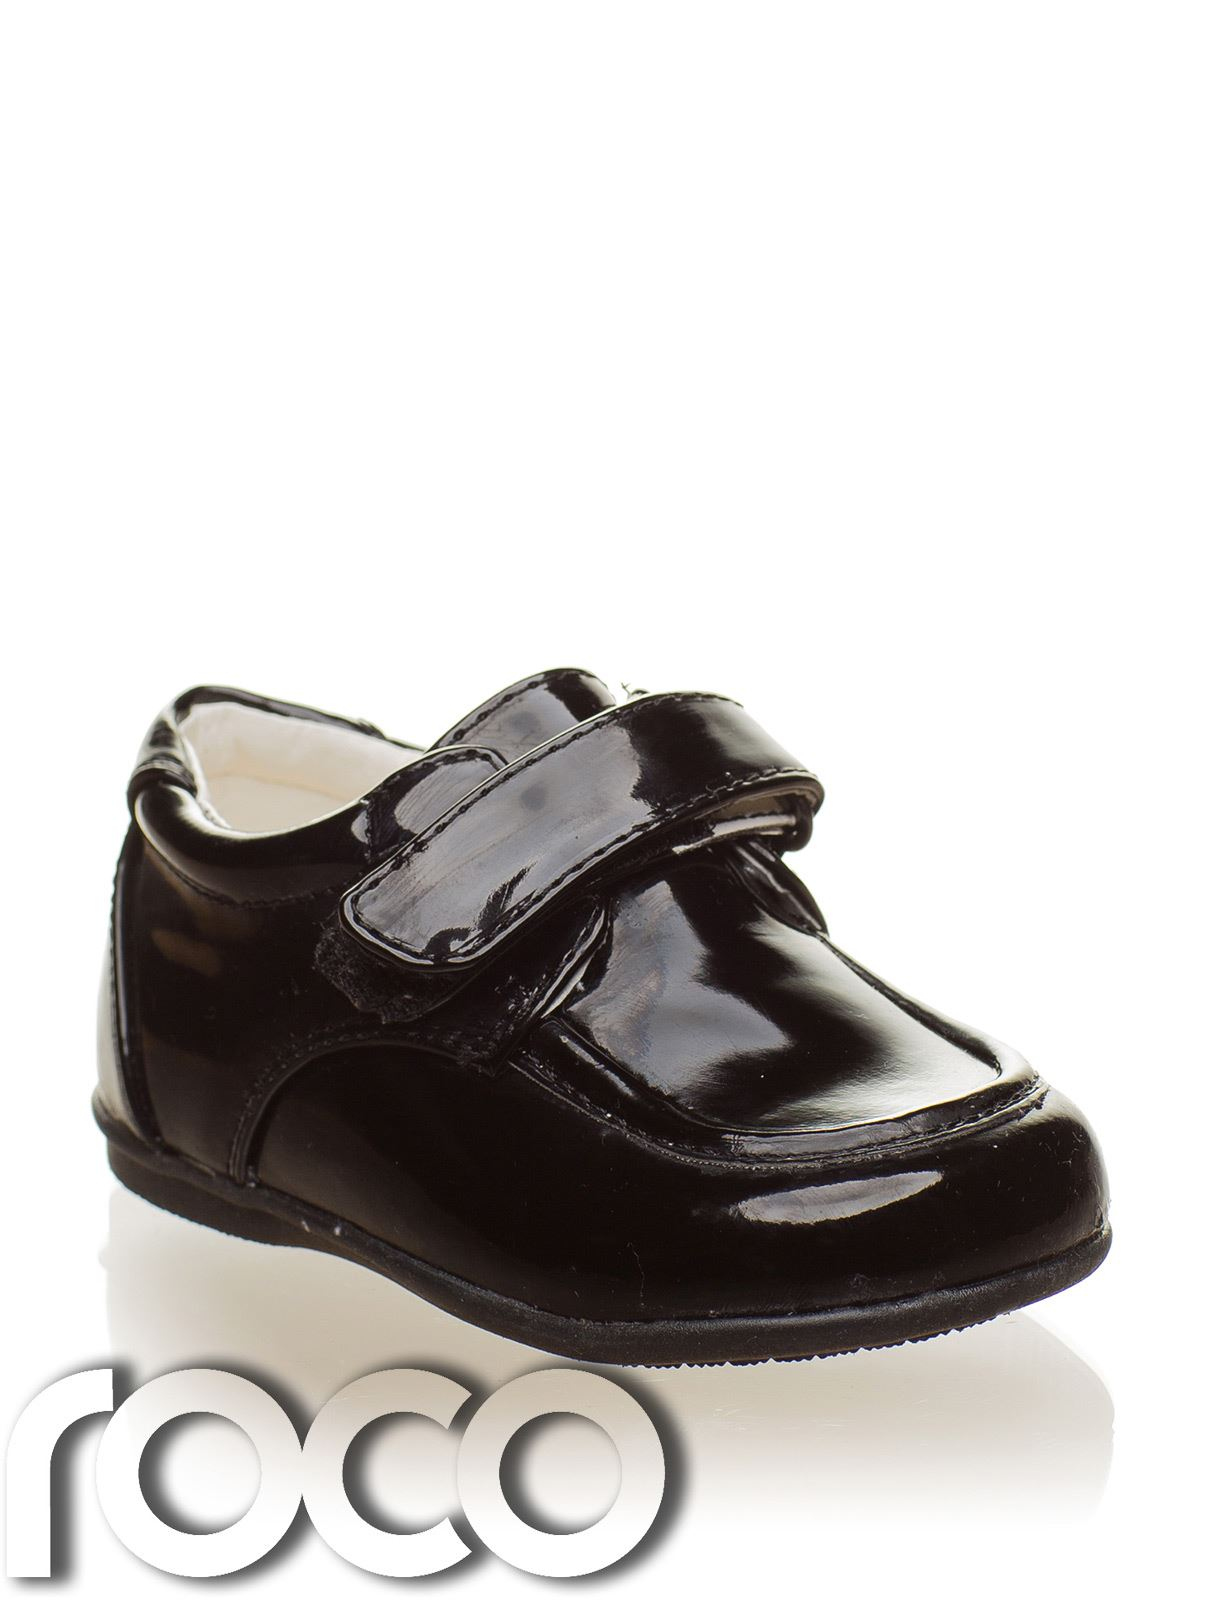 Toddler Black Shoes Boys Wedding Page